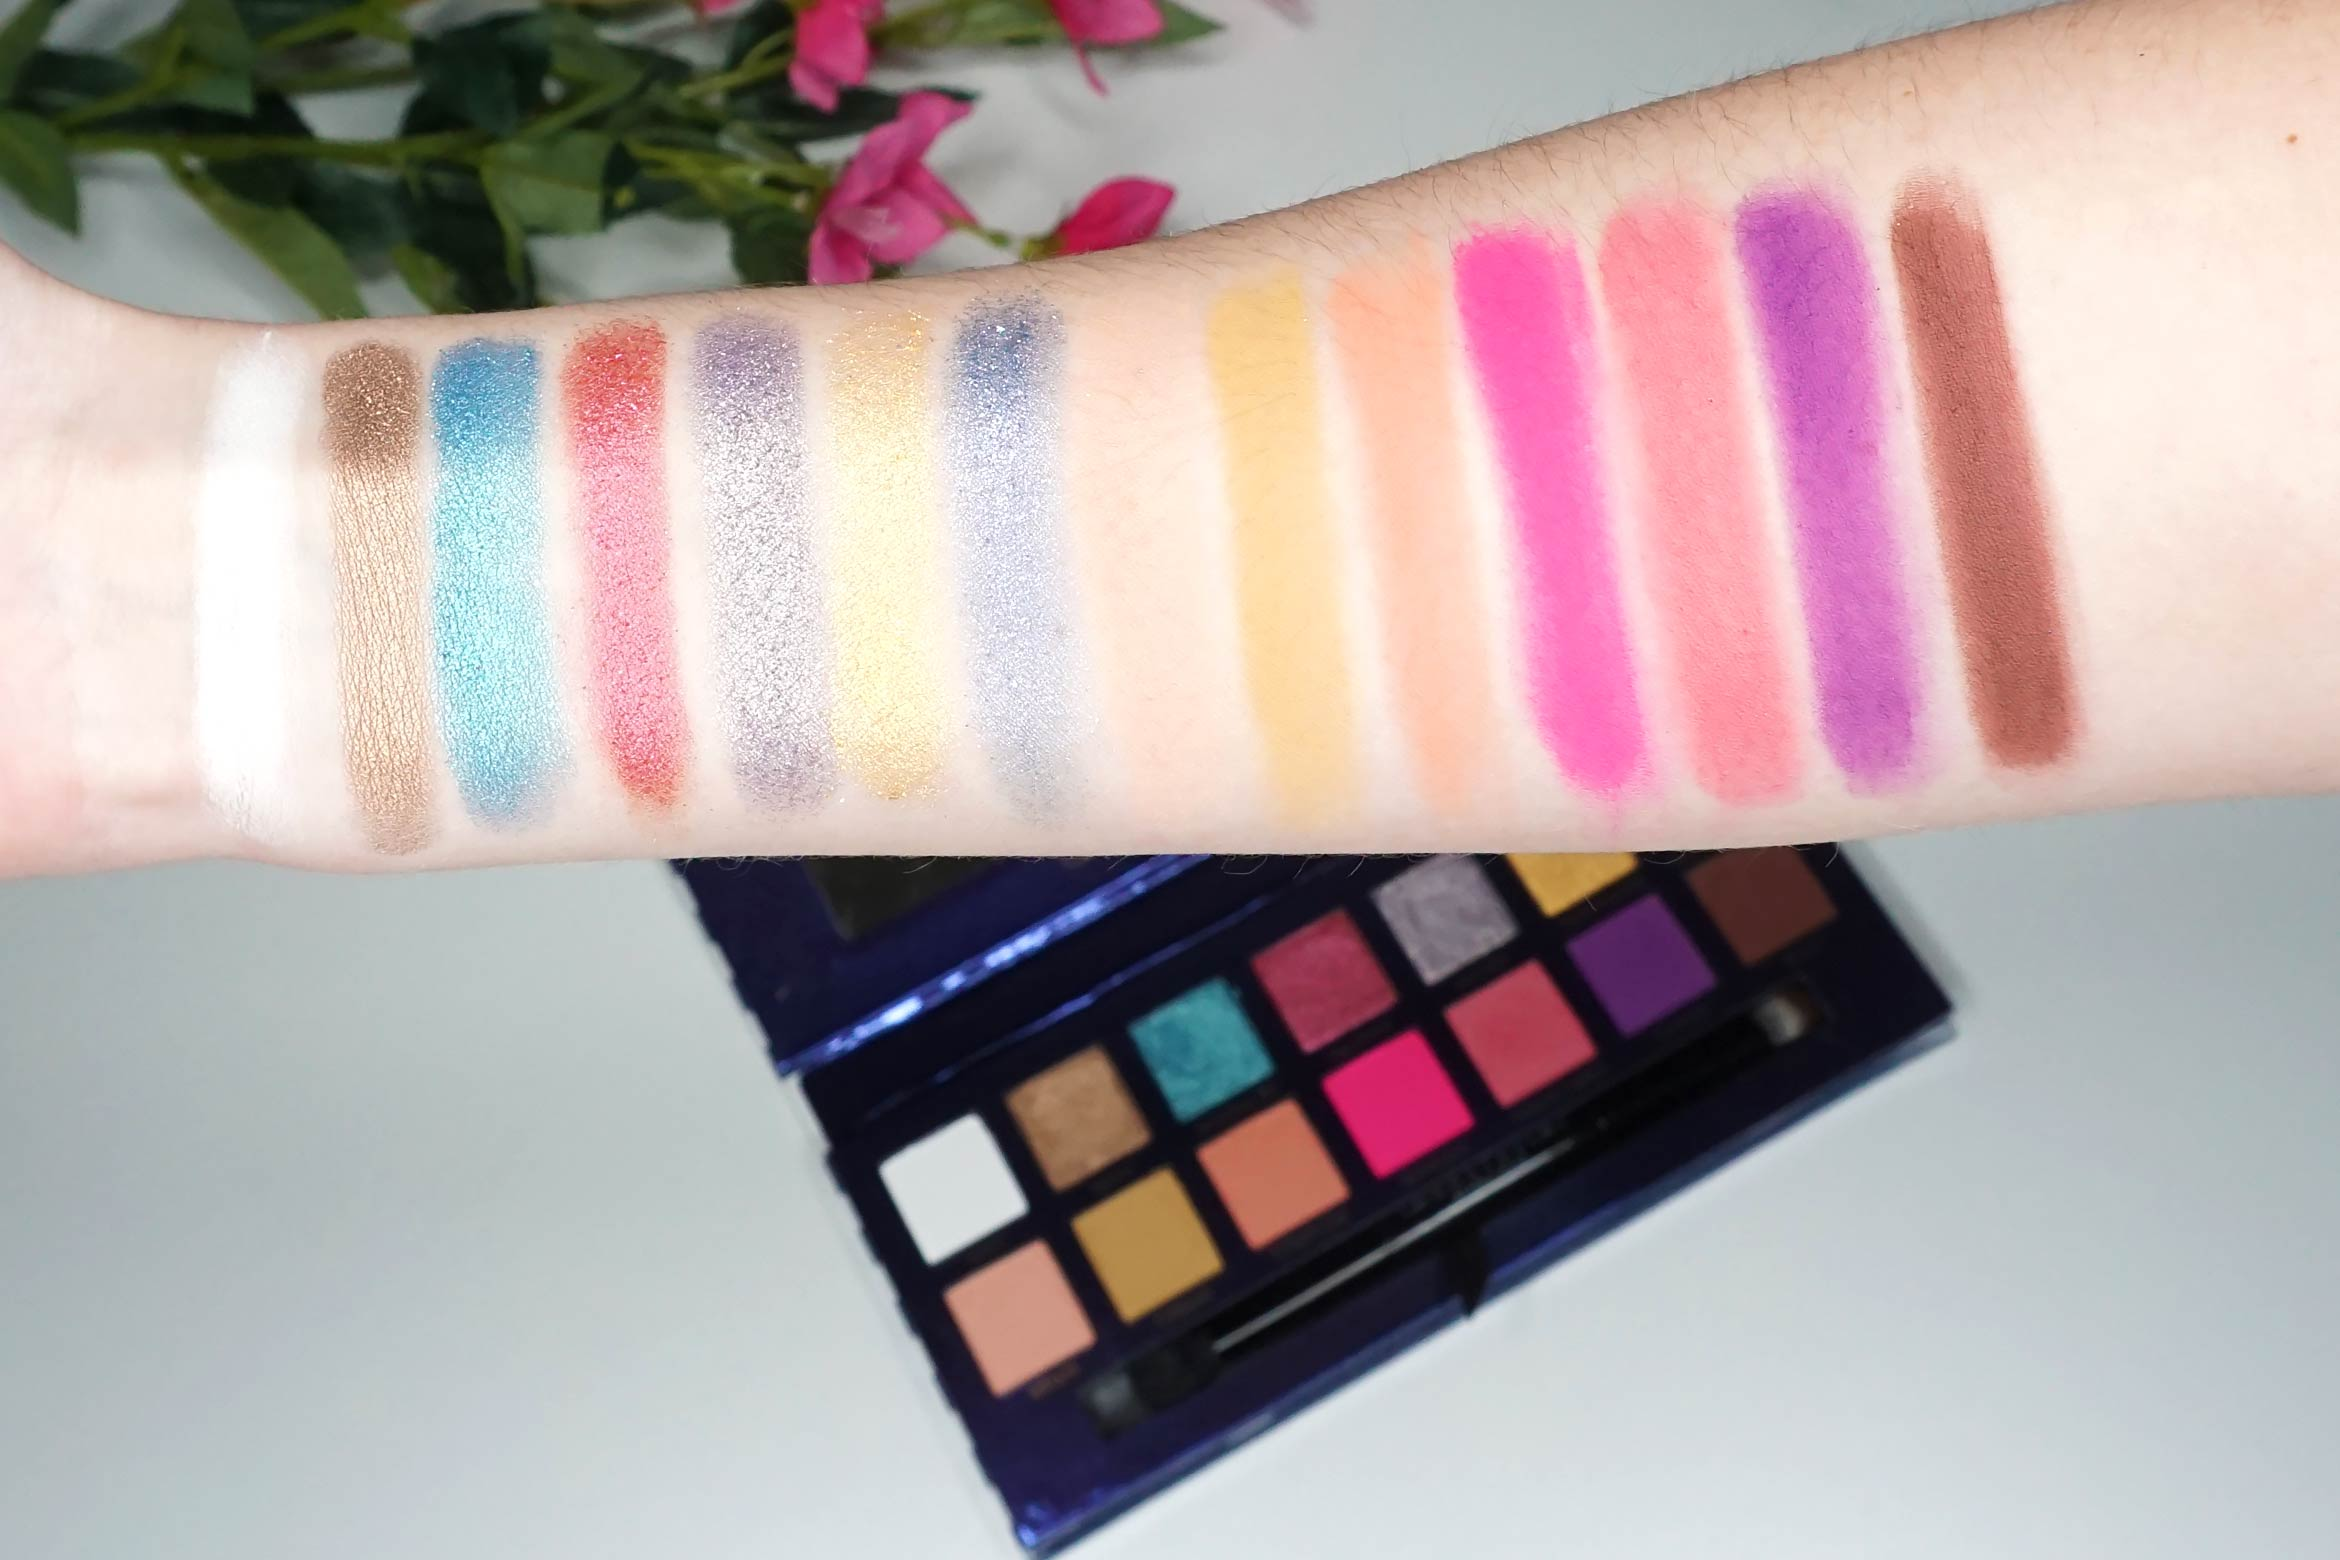 ABH-Anastasia-Riviera-palette-swatches-review